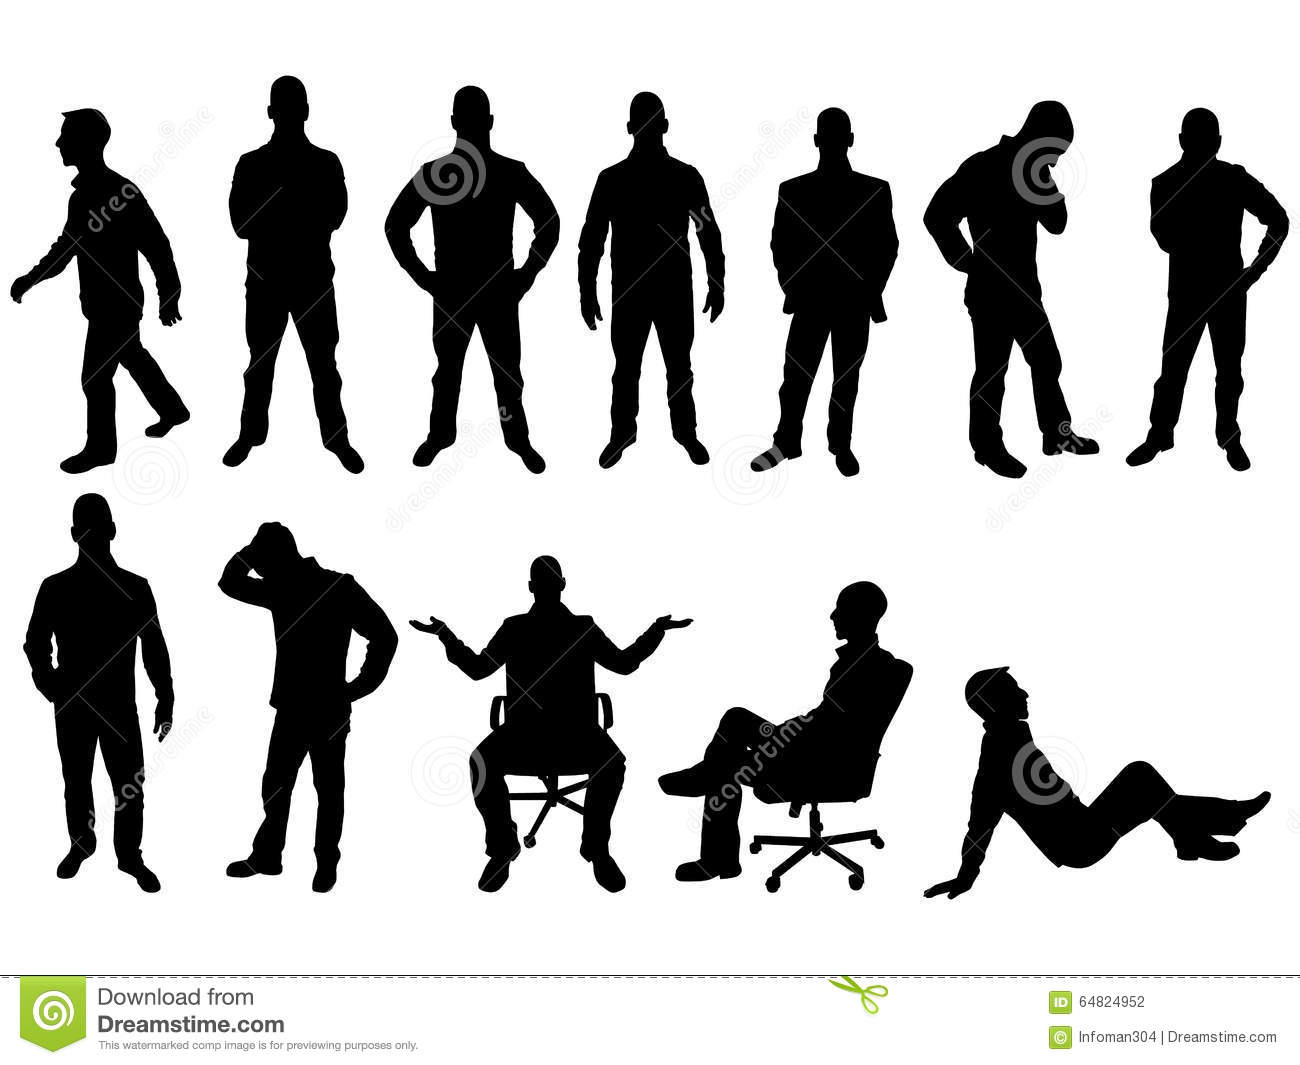 Silhouette Paintings Of People Silhouette De Diverses Personnes Dans Diverses Positions